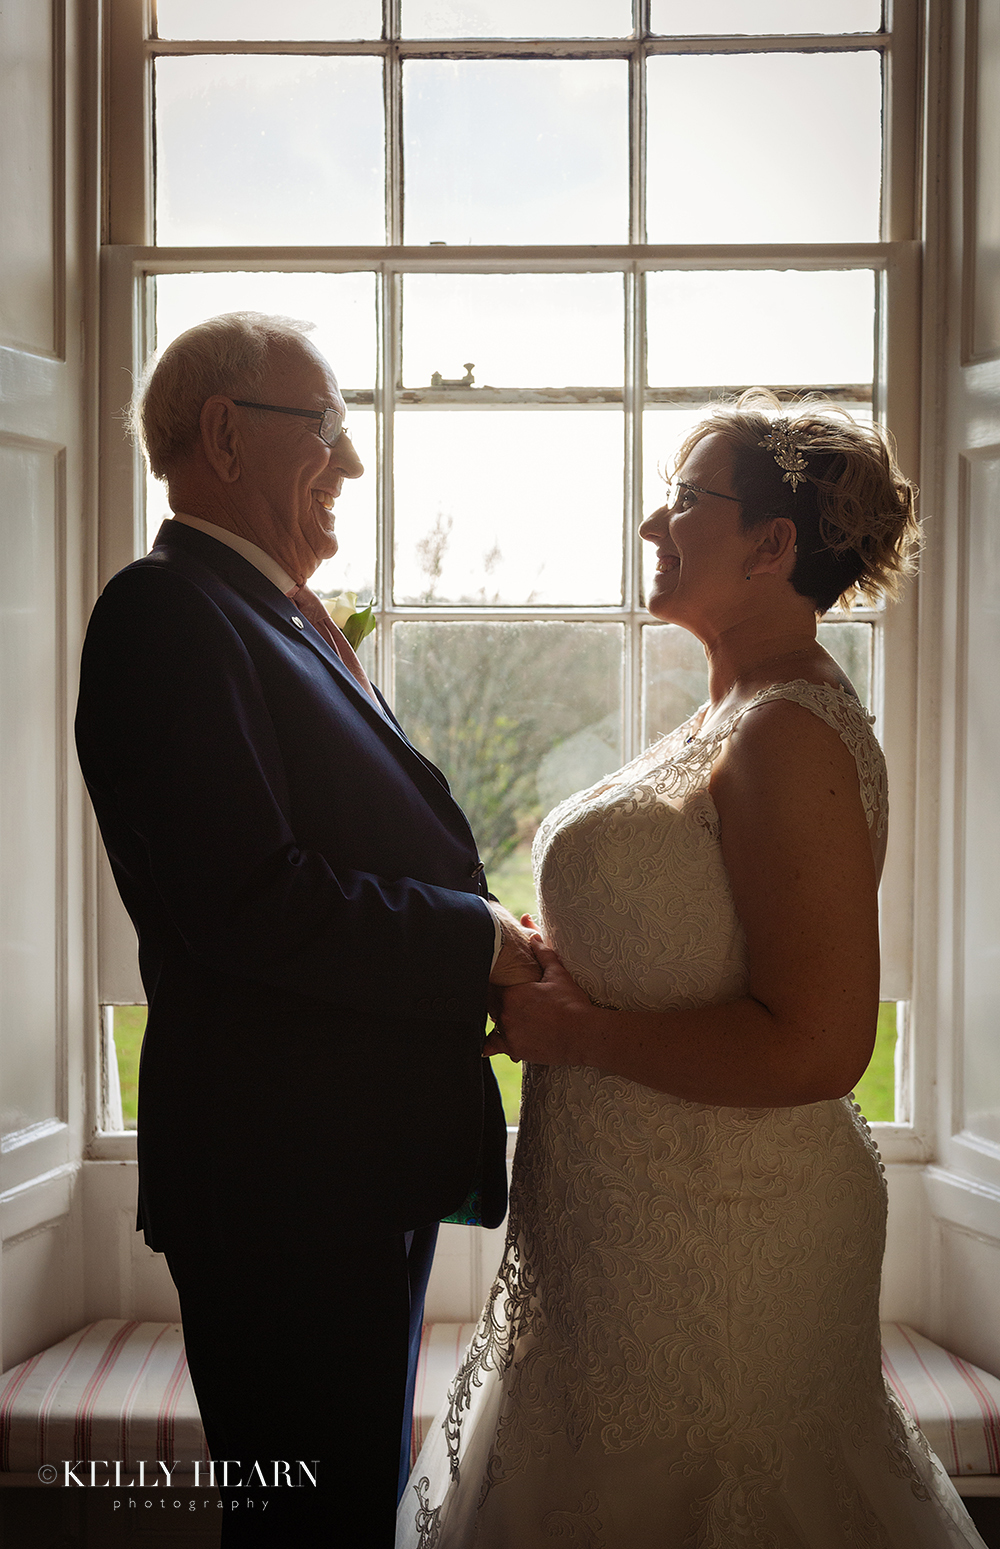 LEW_bride-and-father-by-window.jpg#asset:2769